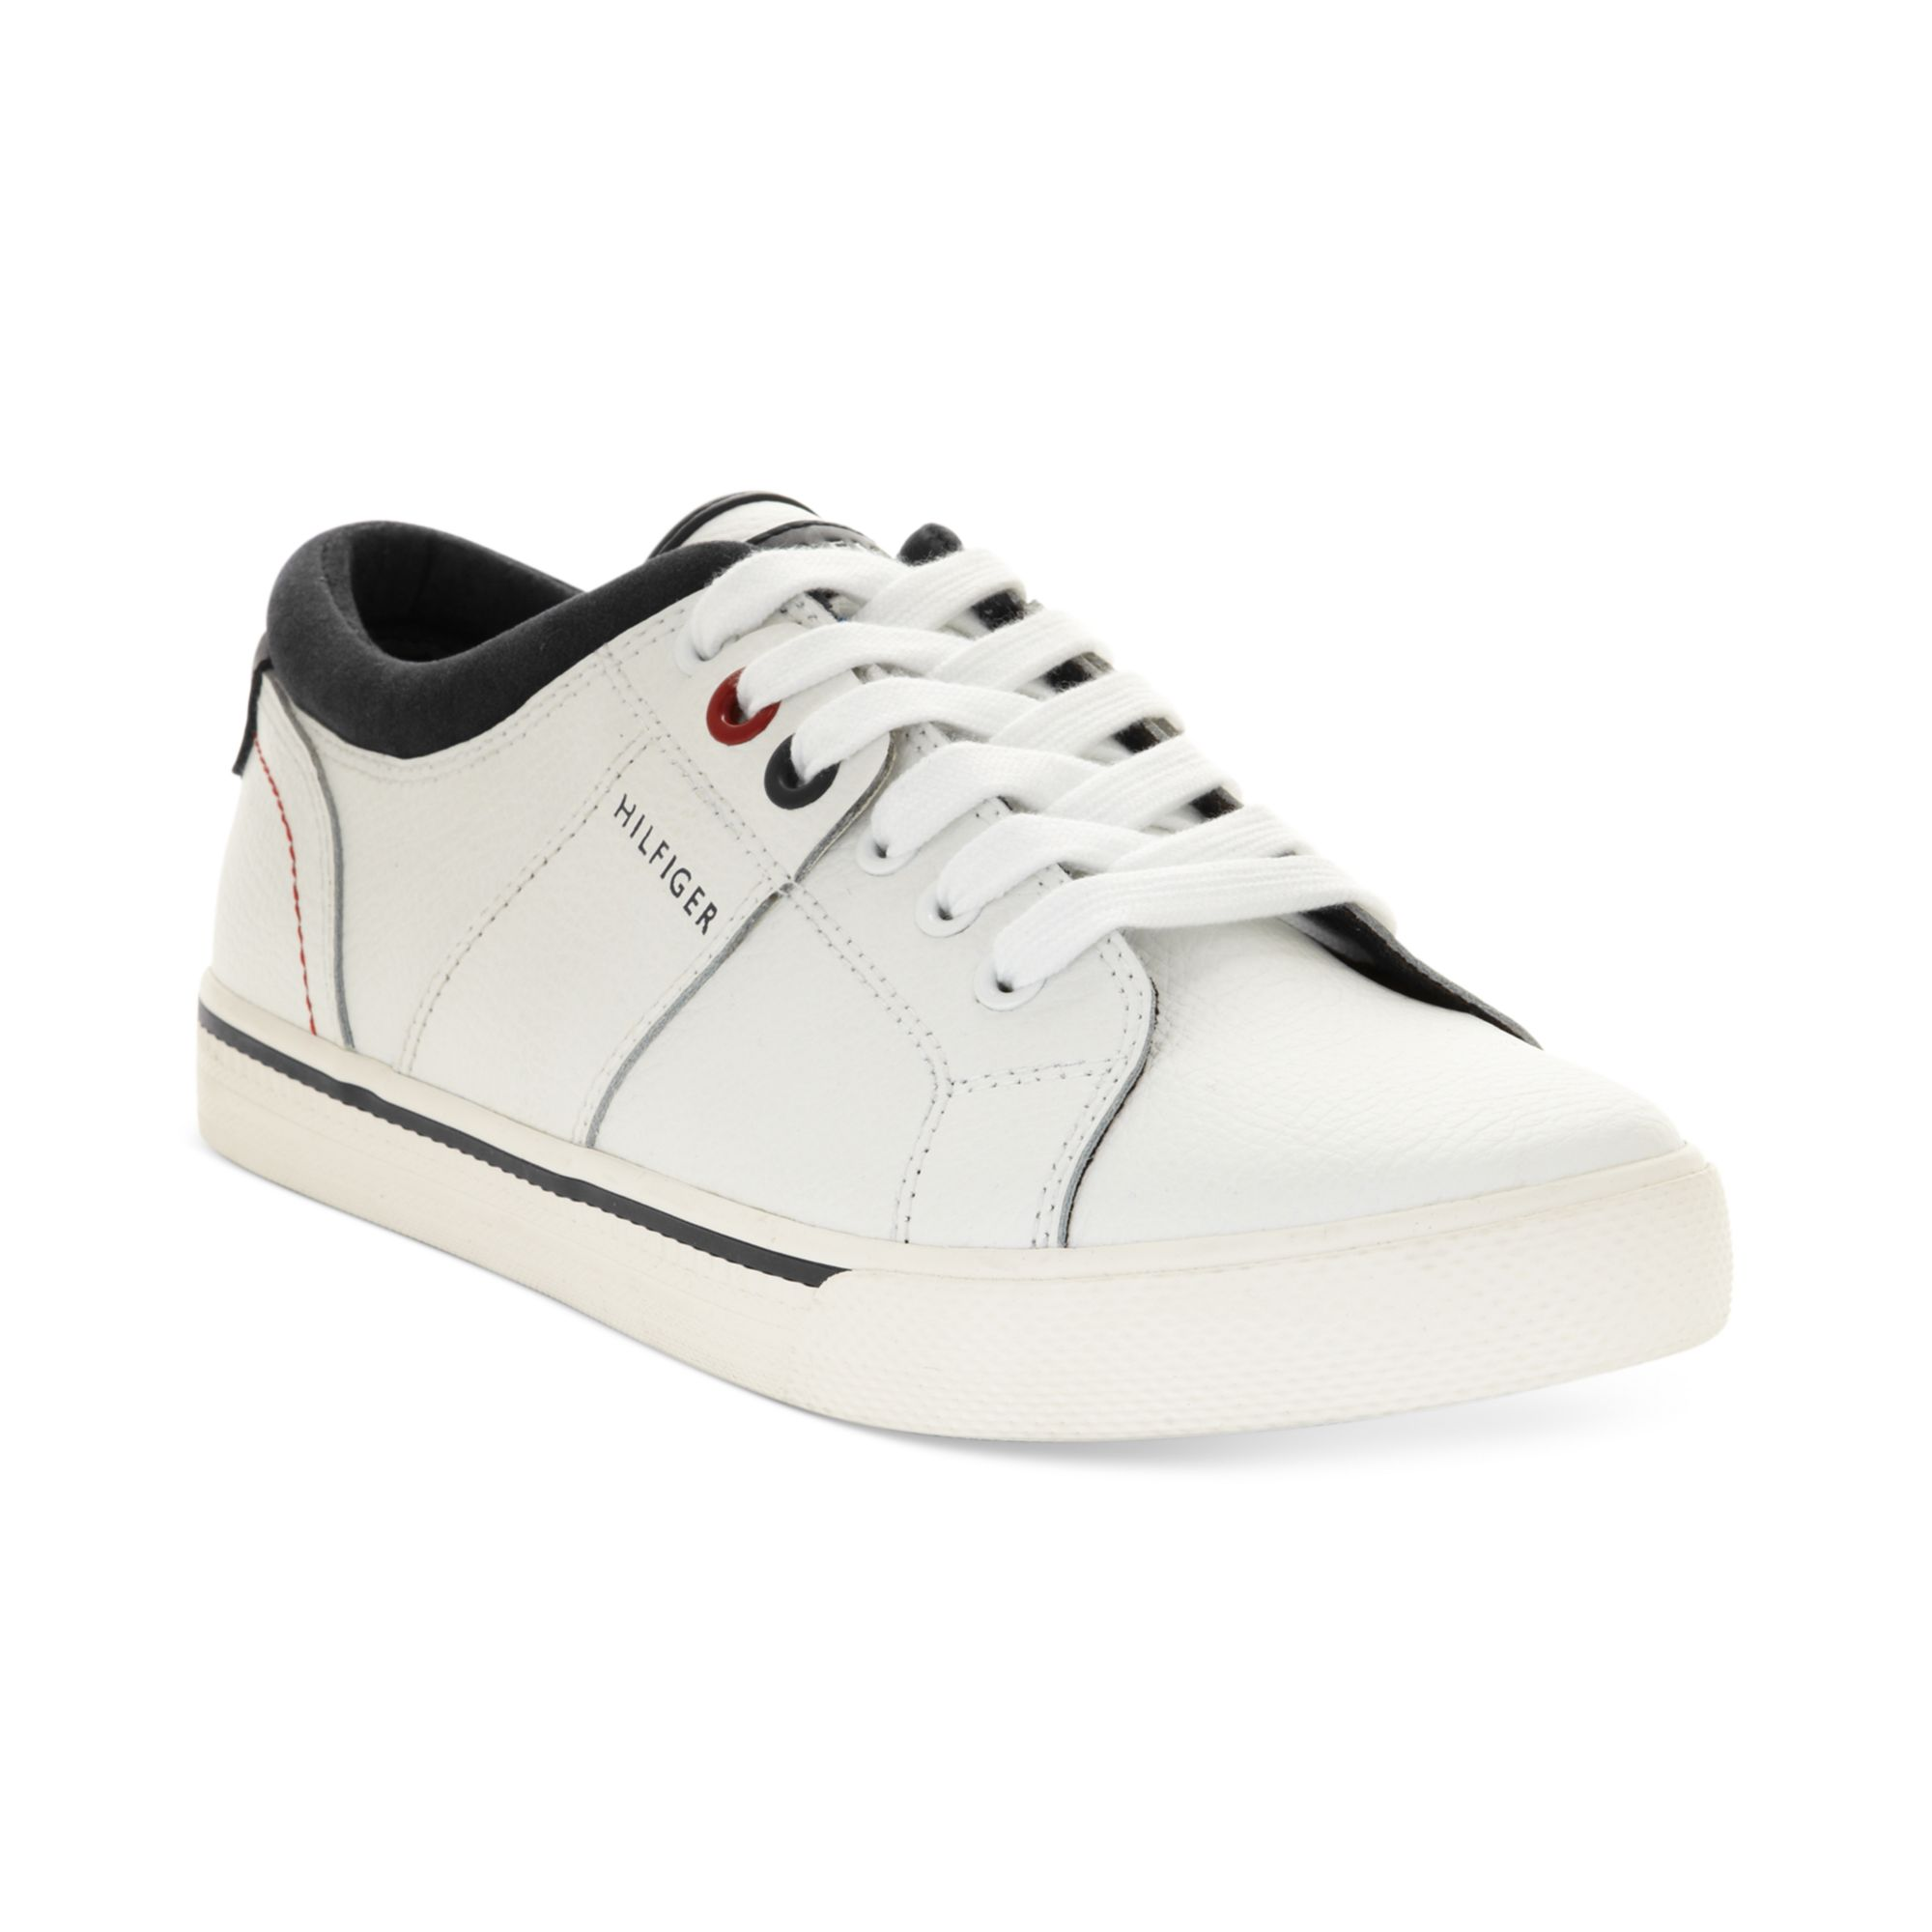 tommy hilfiger robbie sneakers in white for men lyst. Black Bedroom Furniture Sets. Home Design Ideas